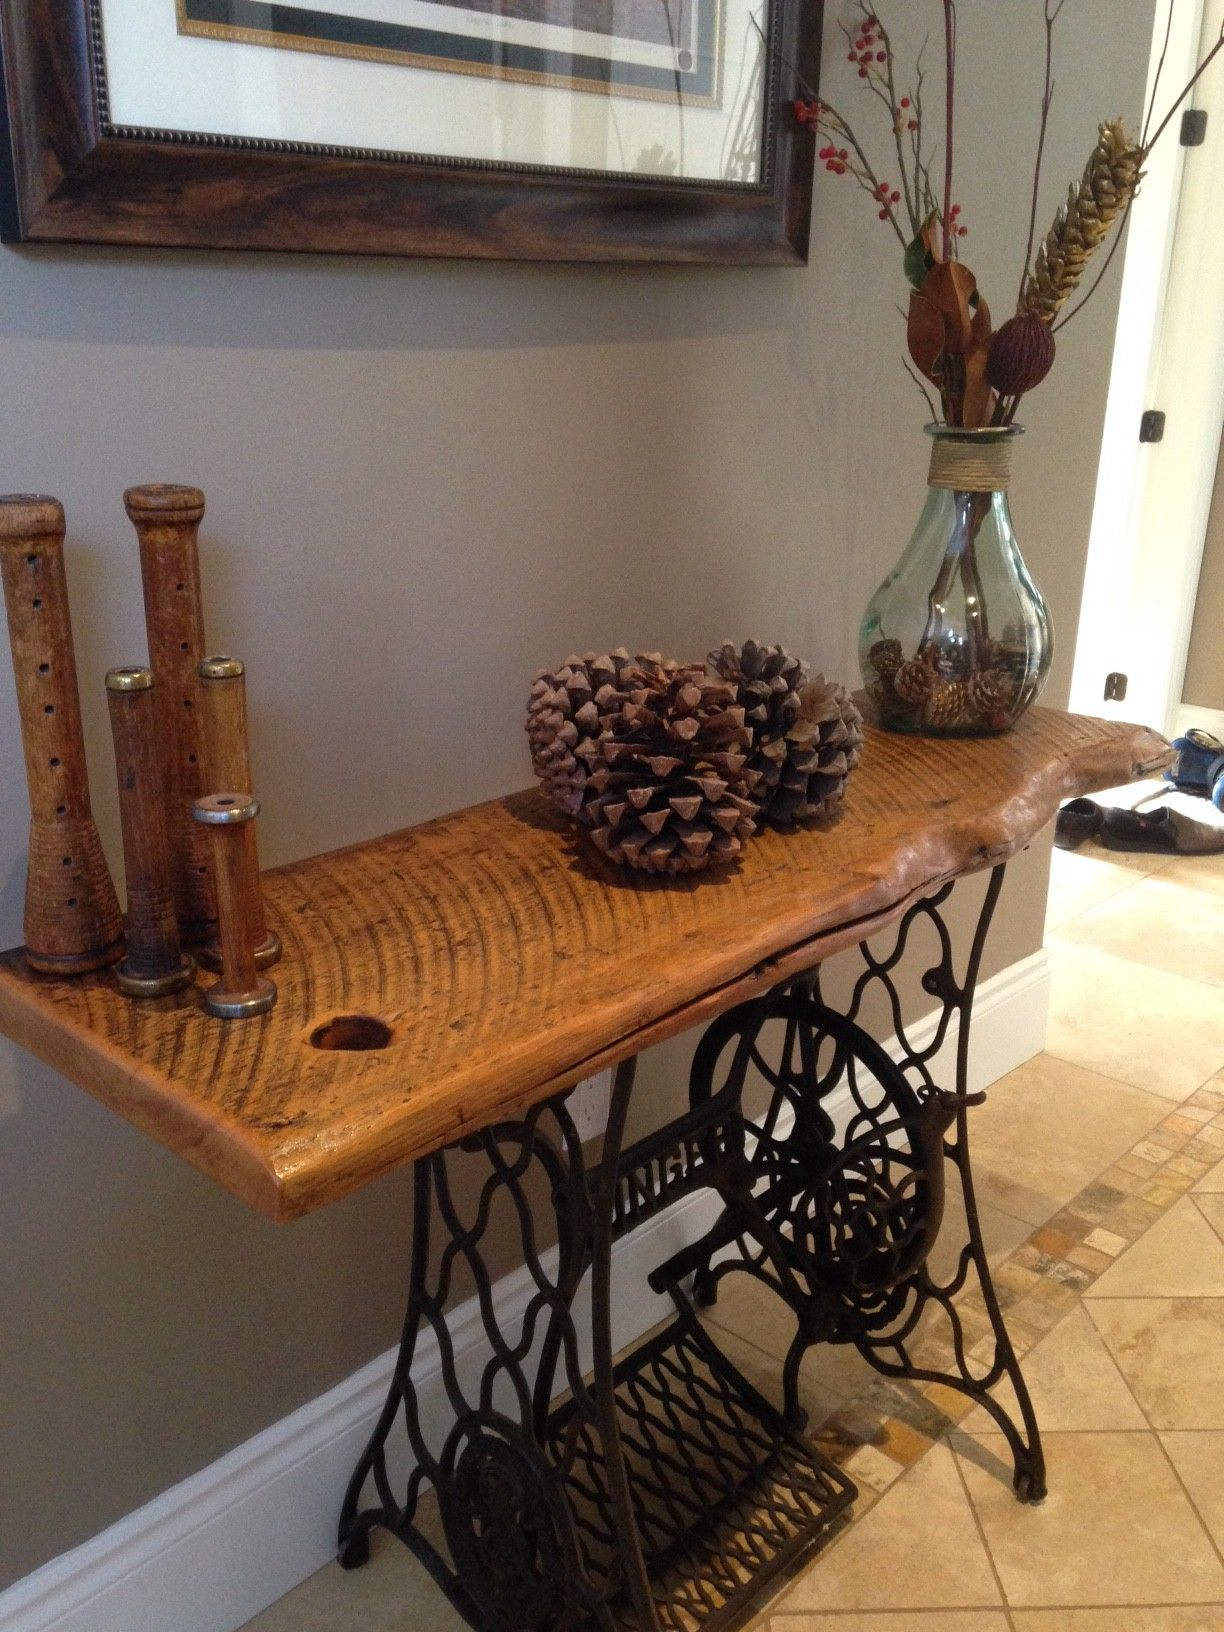 Hallway Table Made With Antique Singer Sewing Base And Reclaimed Barn Wood